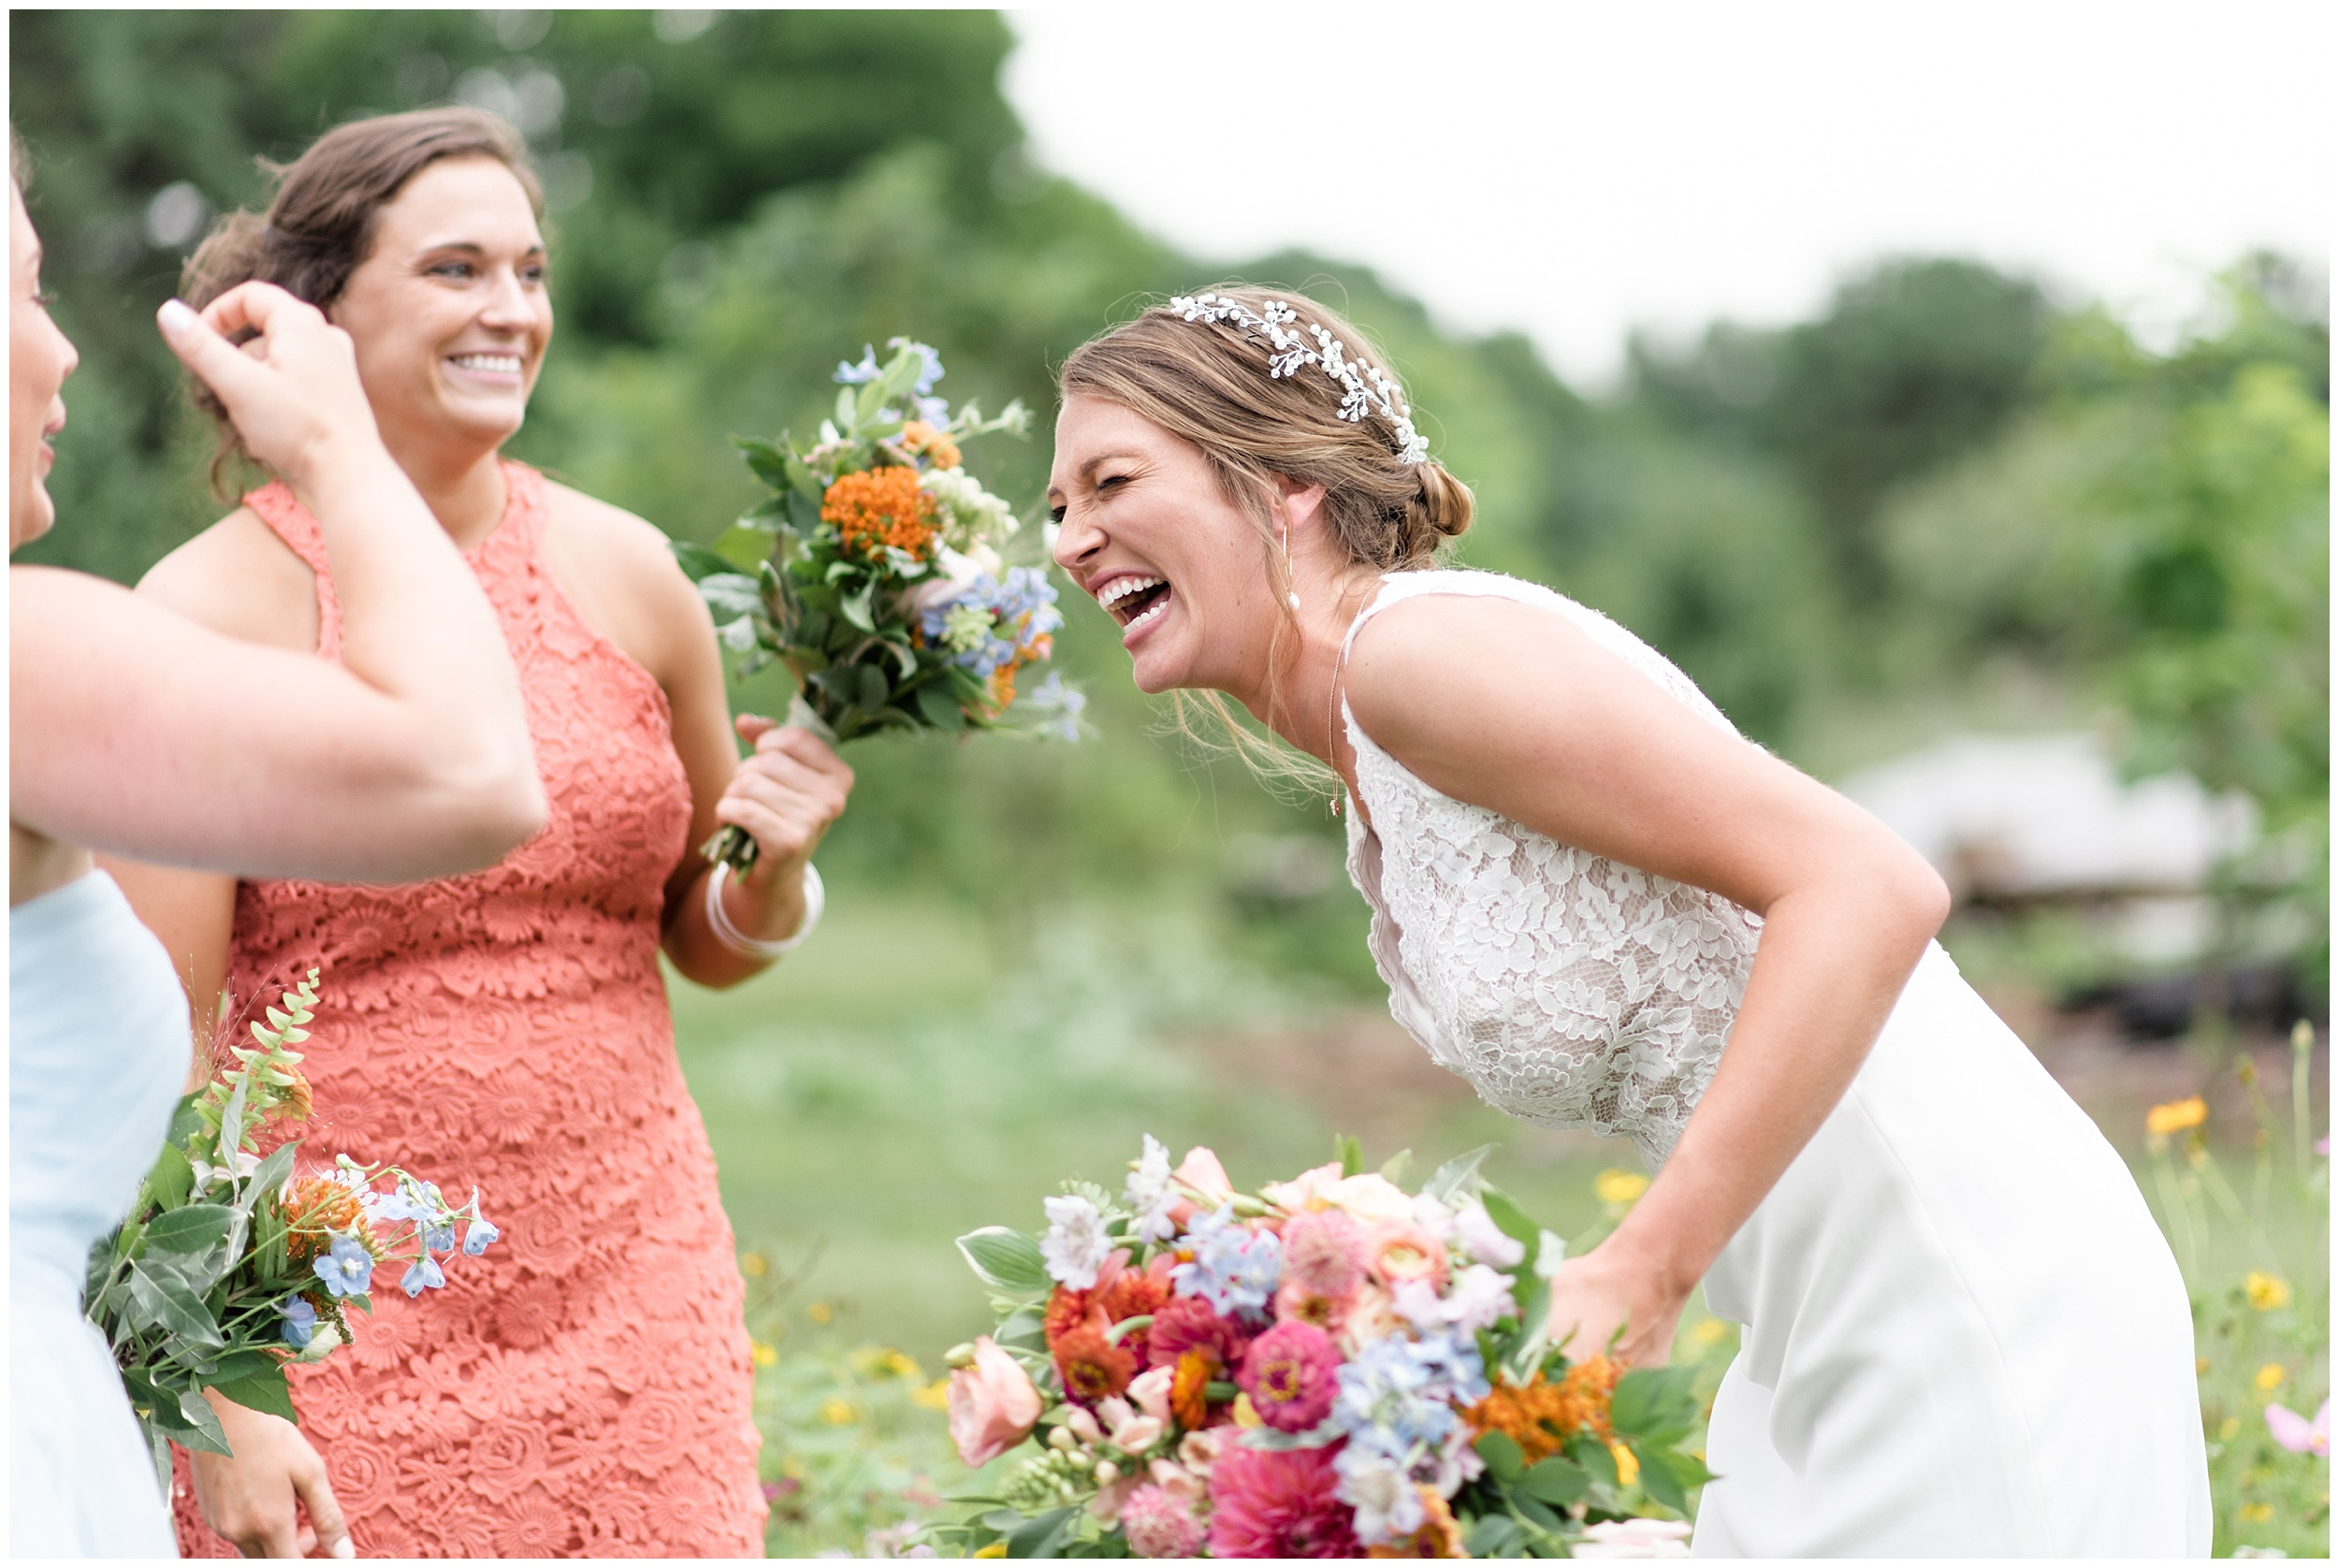 Whimsical-Ethereal-July-Kalamazoo-Wedding-Bright-Airy-Documentary-Milwaukee-Photographer_0048.jpg